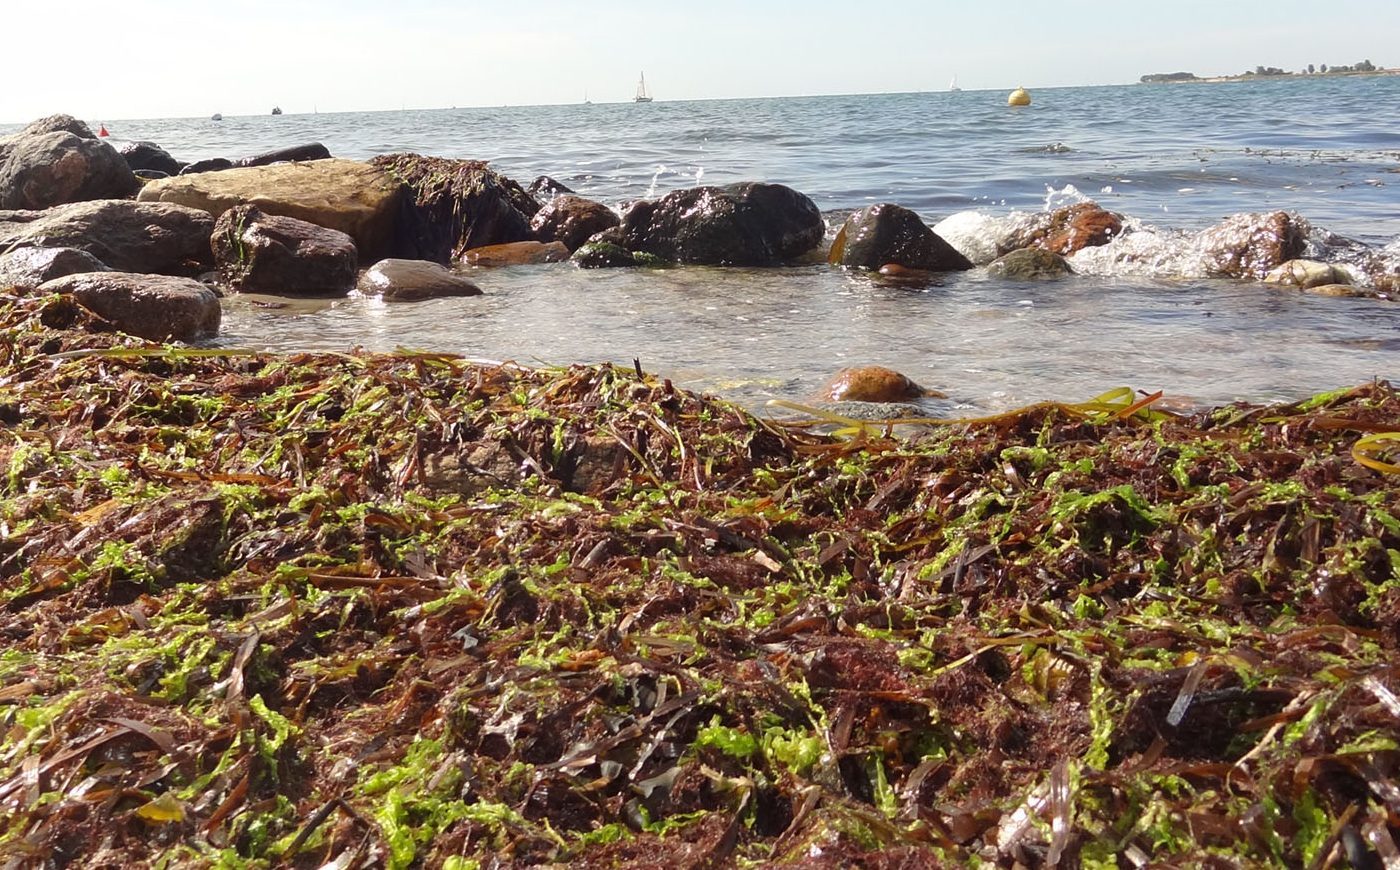 A shoreline with a seagrass and rocks.